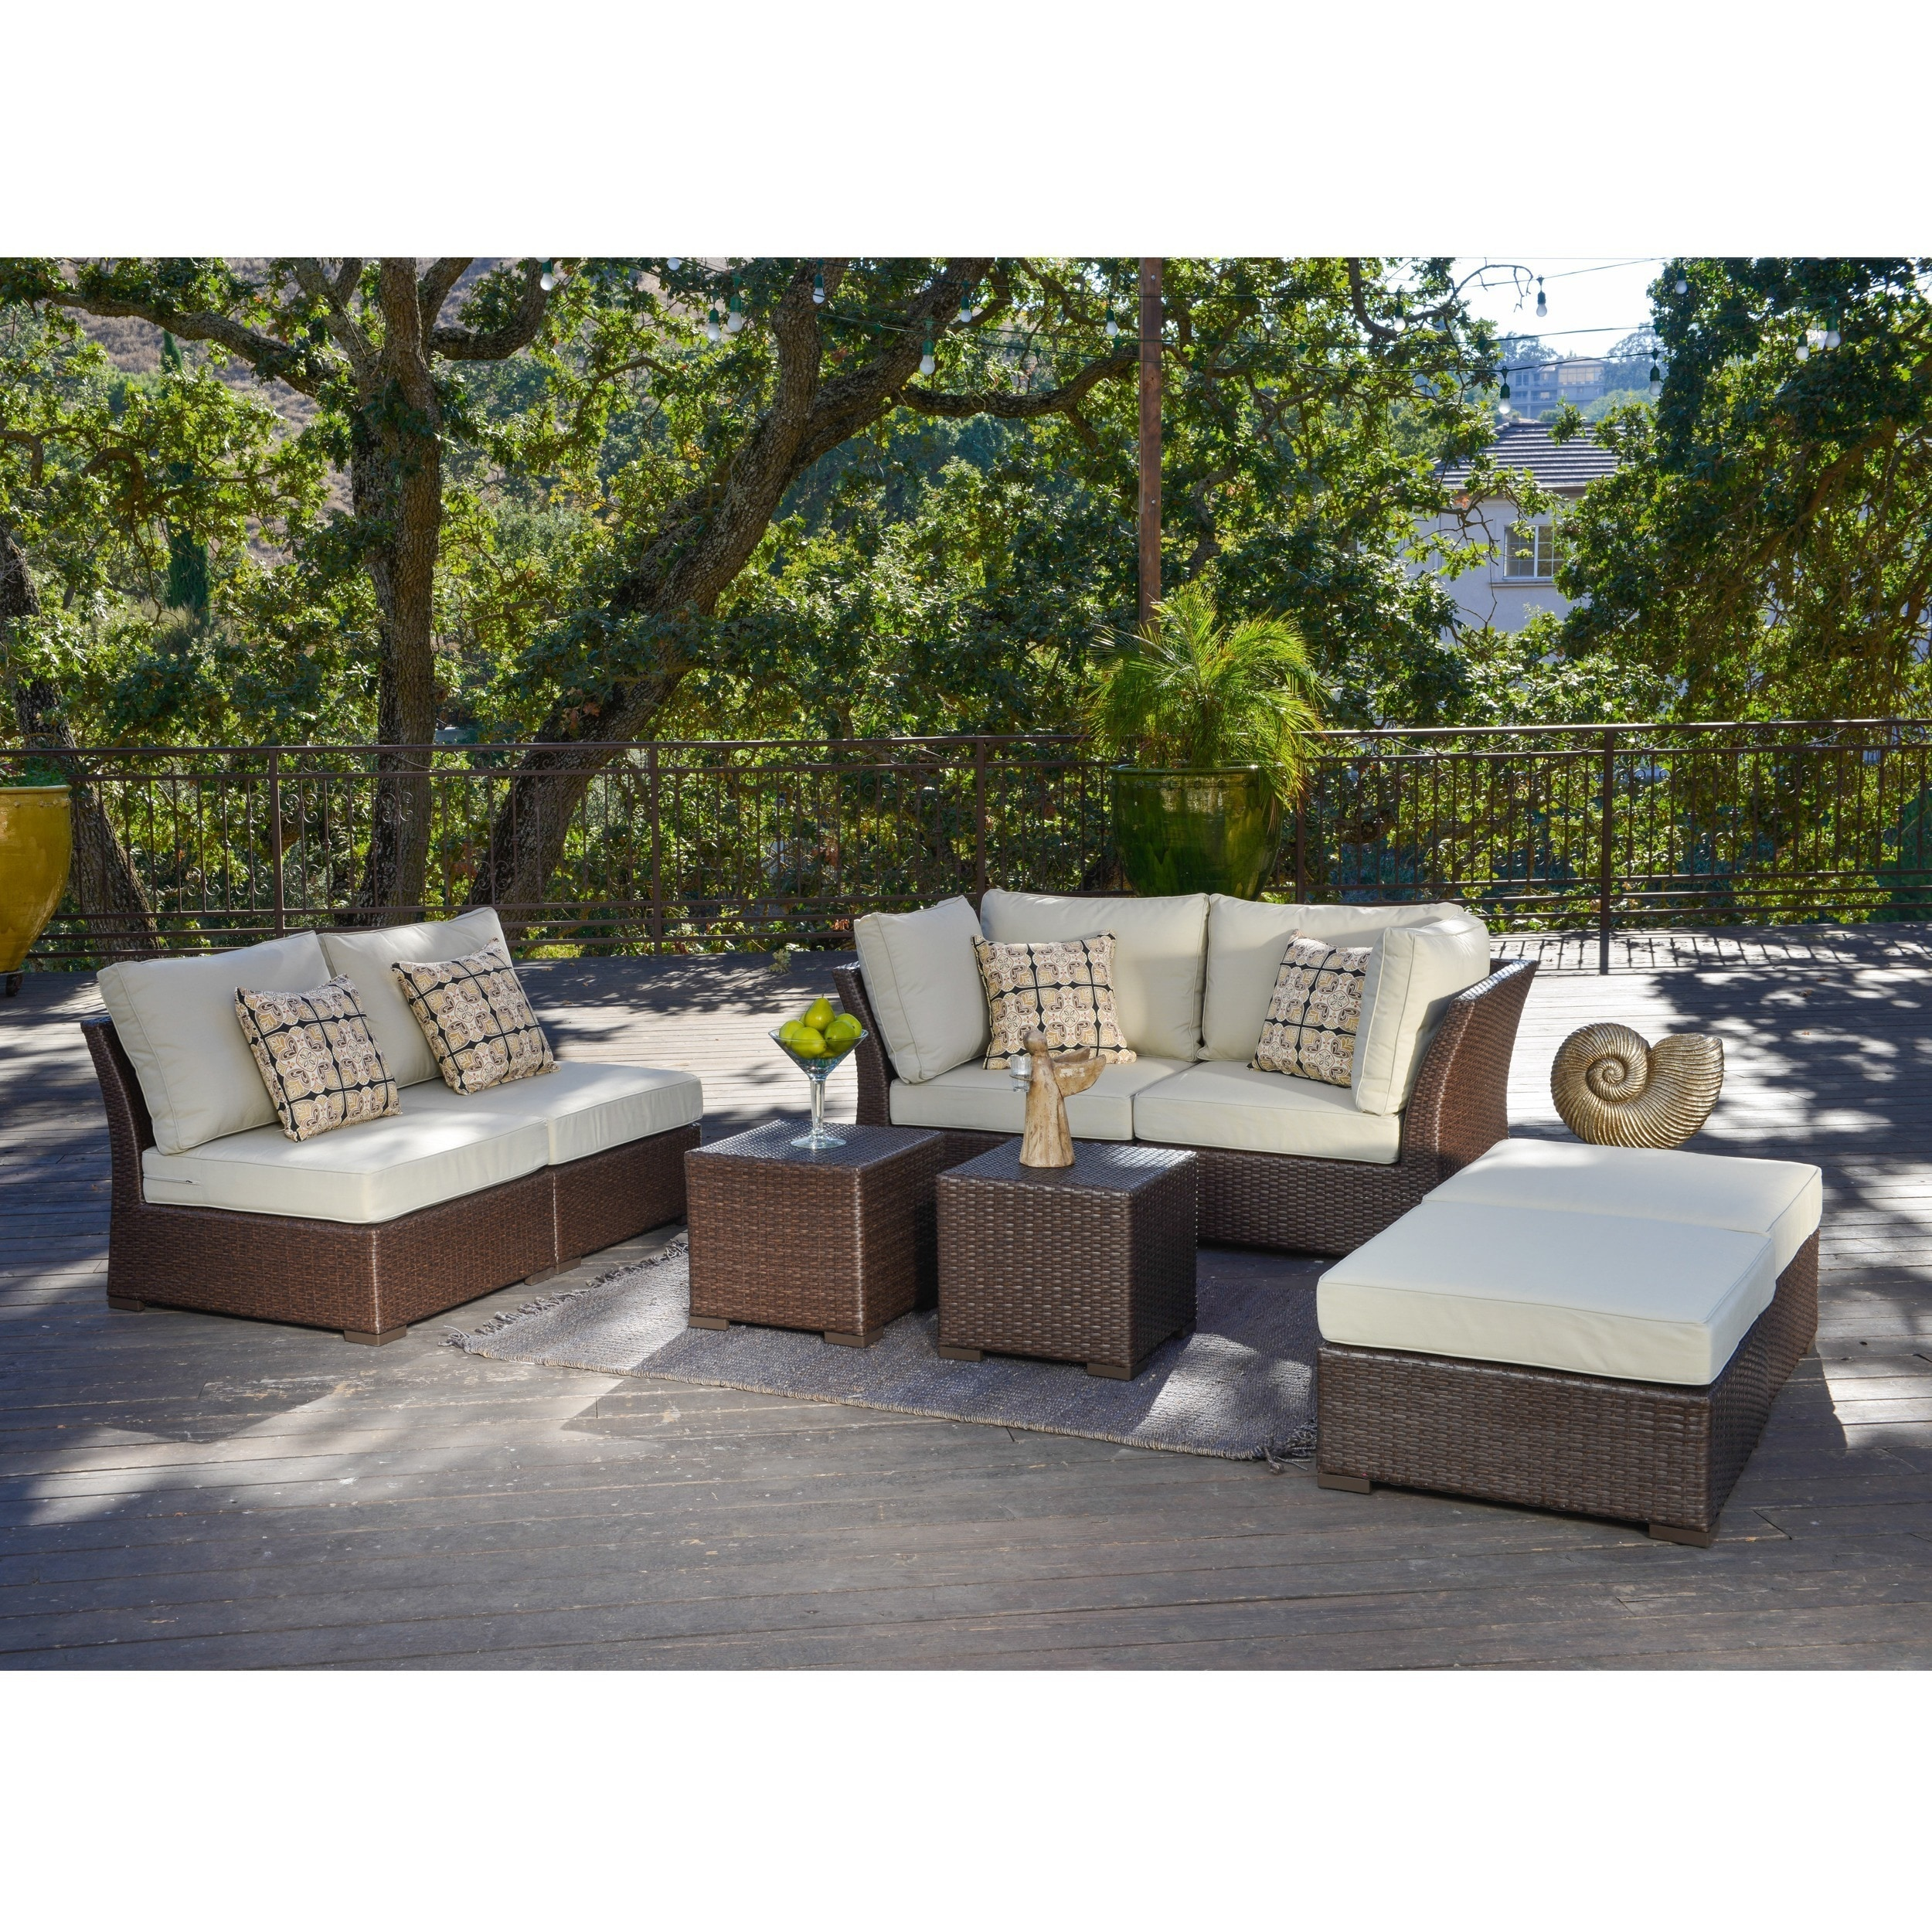 dawson furniture sectional canyon patio outdoor all sale ae it s set important sunbrella wicker here weather with piece seating